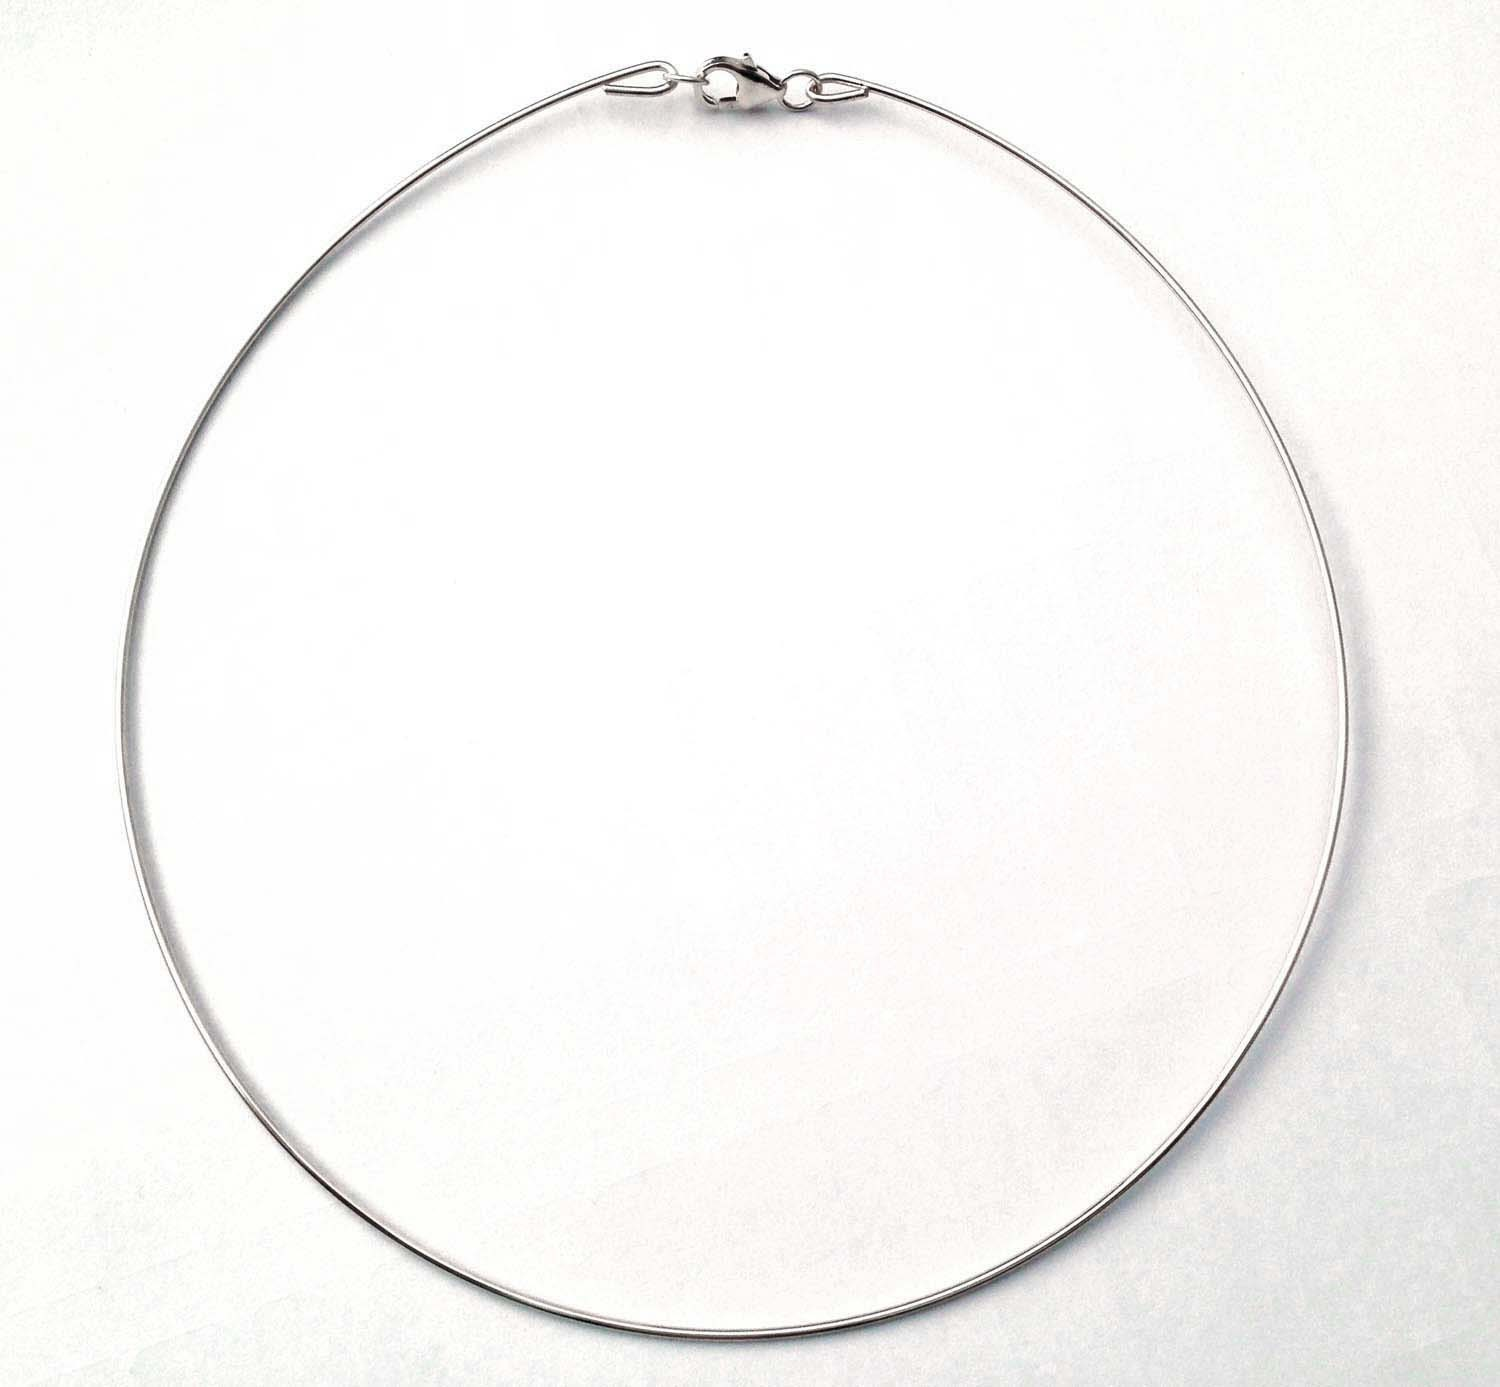 necklace trade shop be ribbon brass products hoop shortnecklaceweb fair fairtrade good laurita